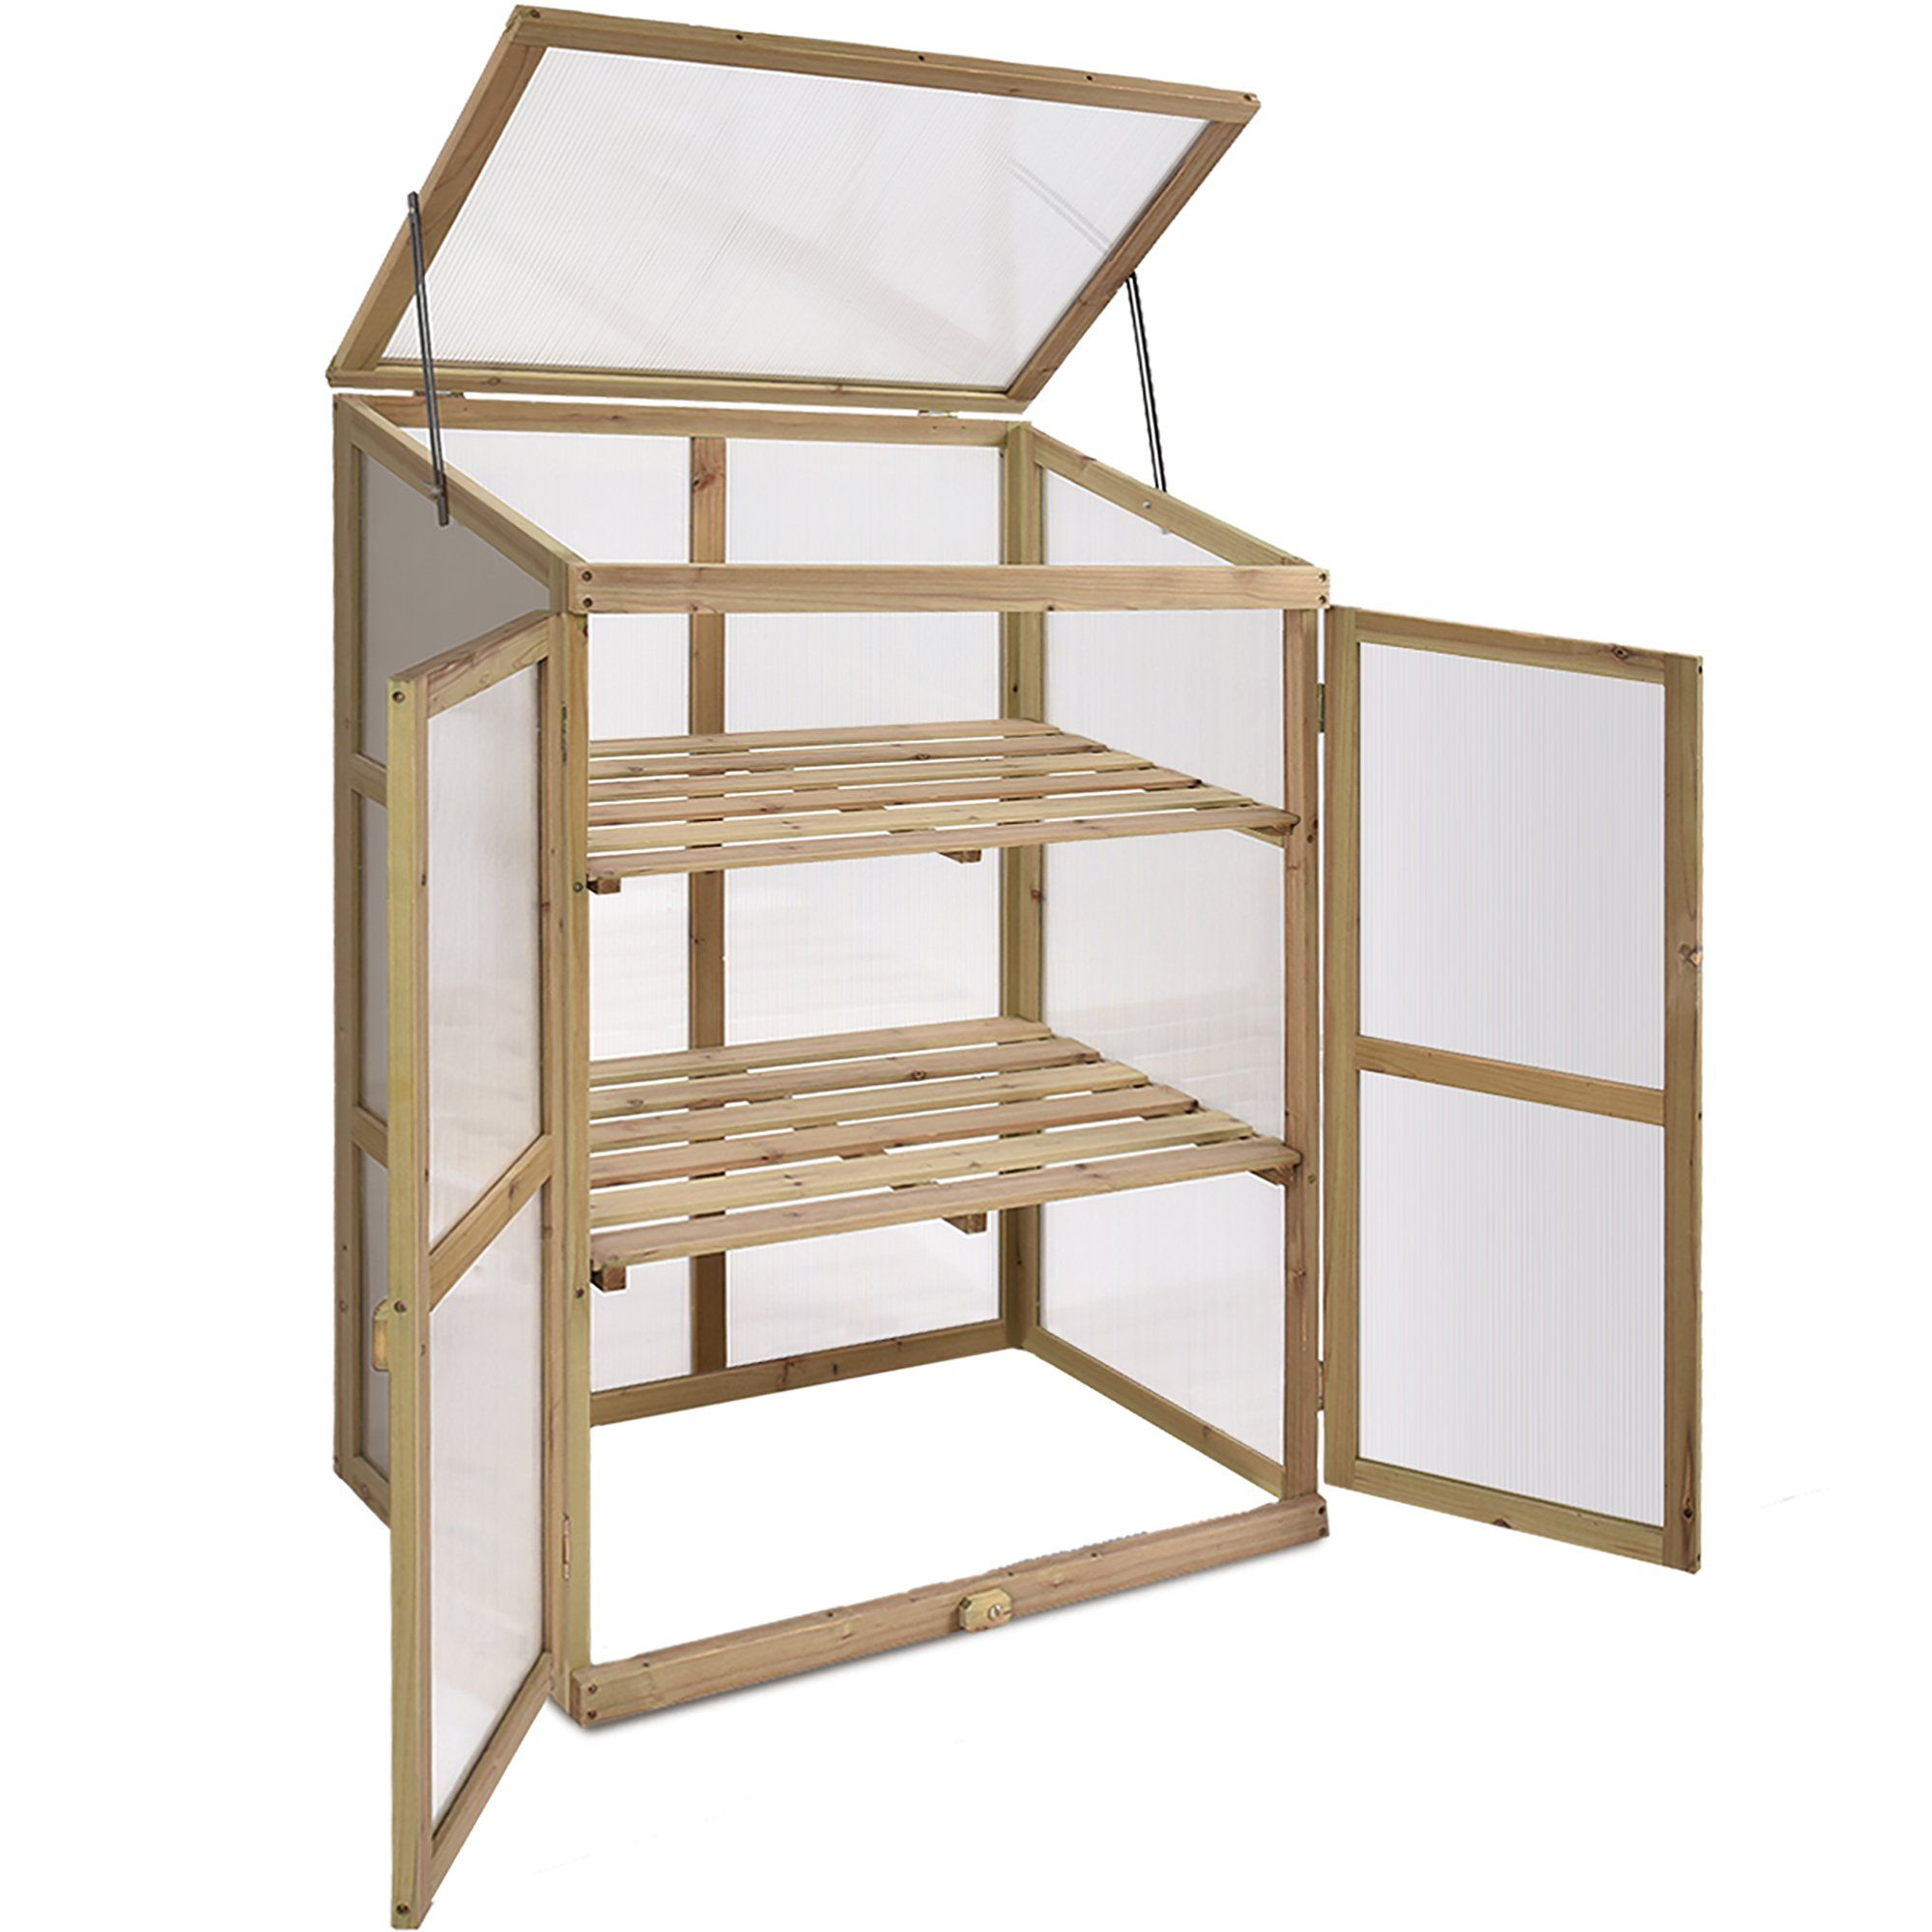 Costway 30 x 225 x 43 2tier wooden cold frame